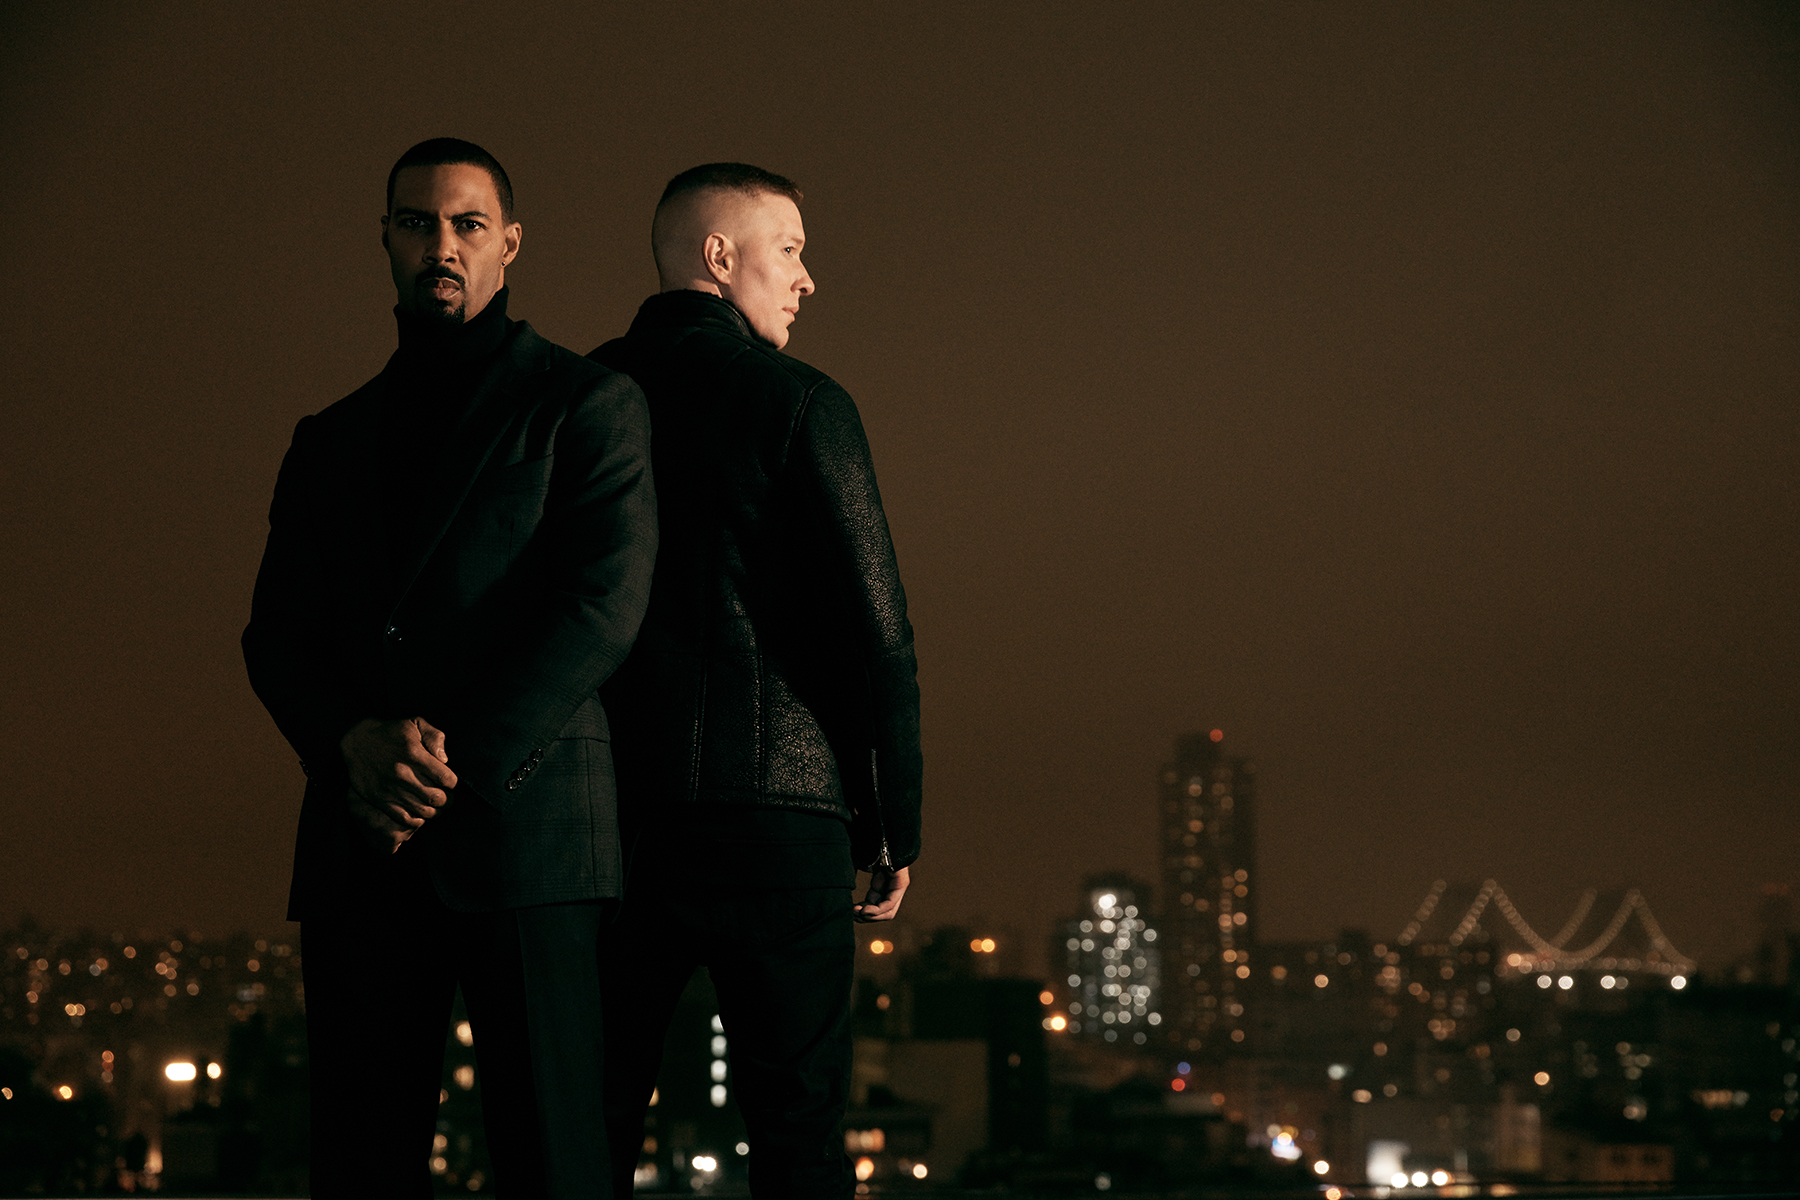 First Look: 'Power' Season 3